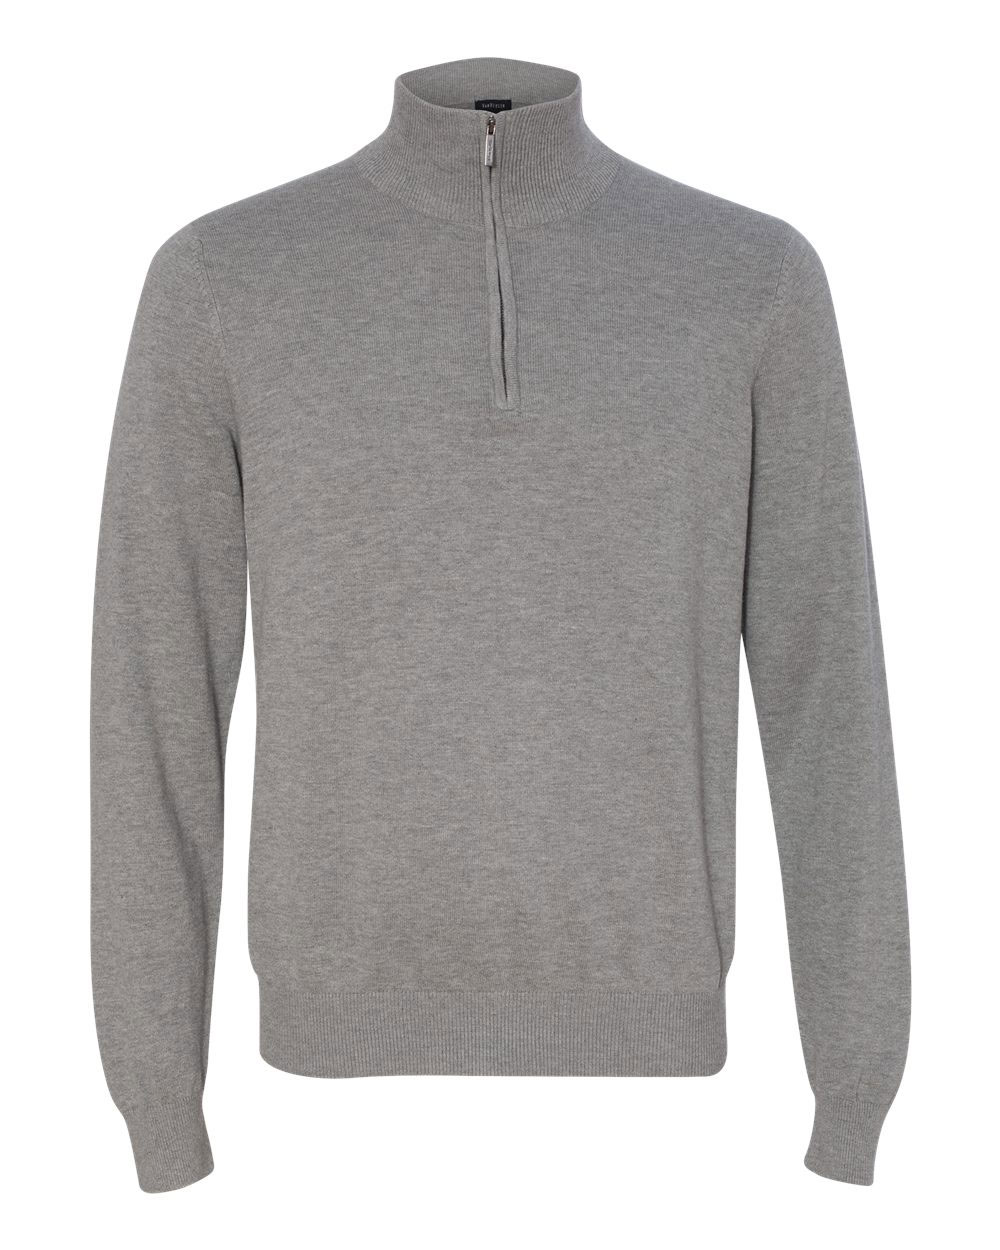 Van Heusen 1/4-Zip Mens Sweater